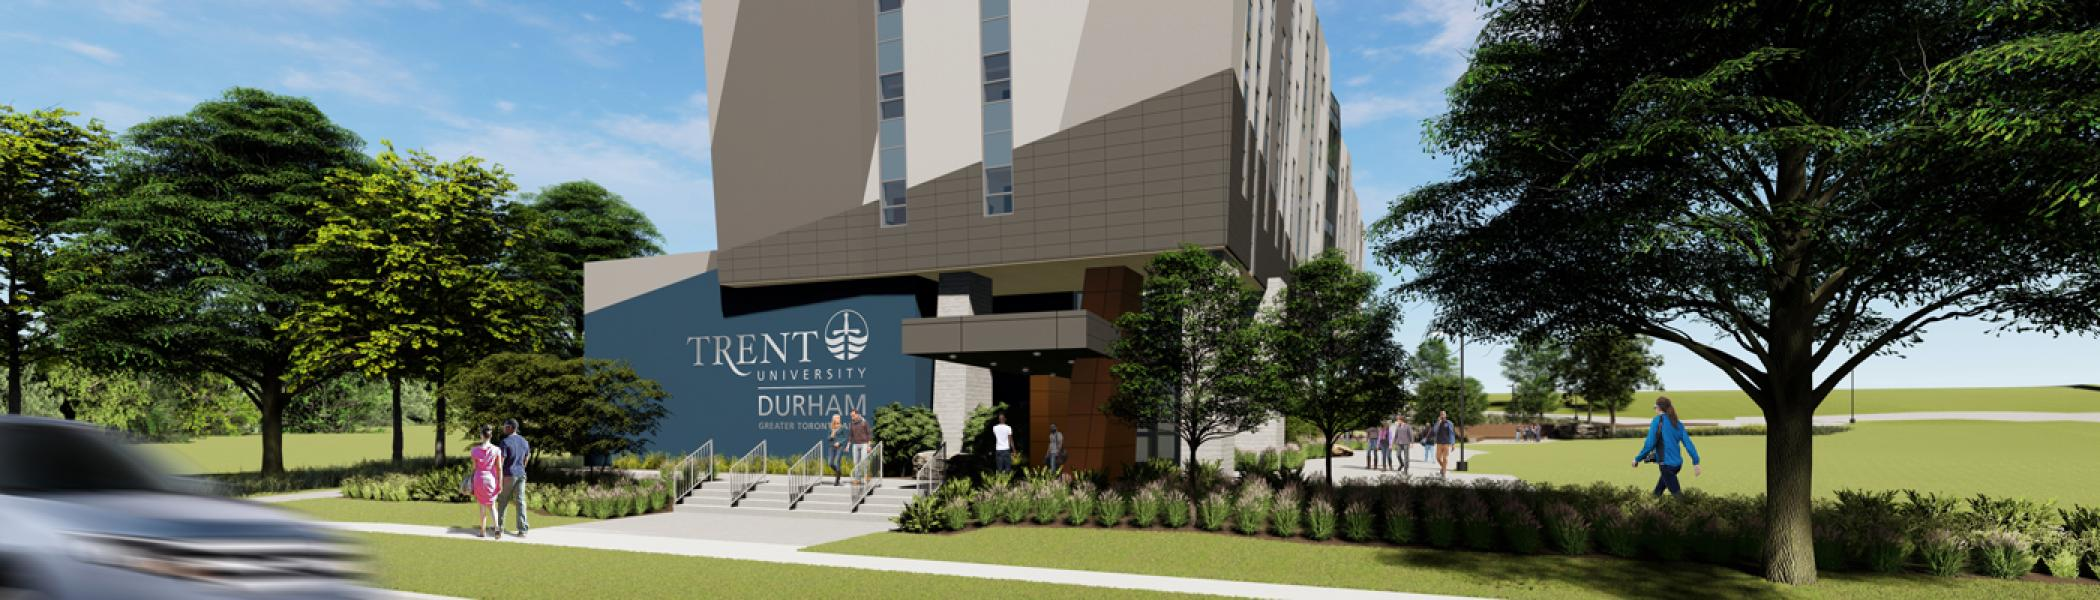 Trent University Durham GTA Expansion west view rendering.